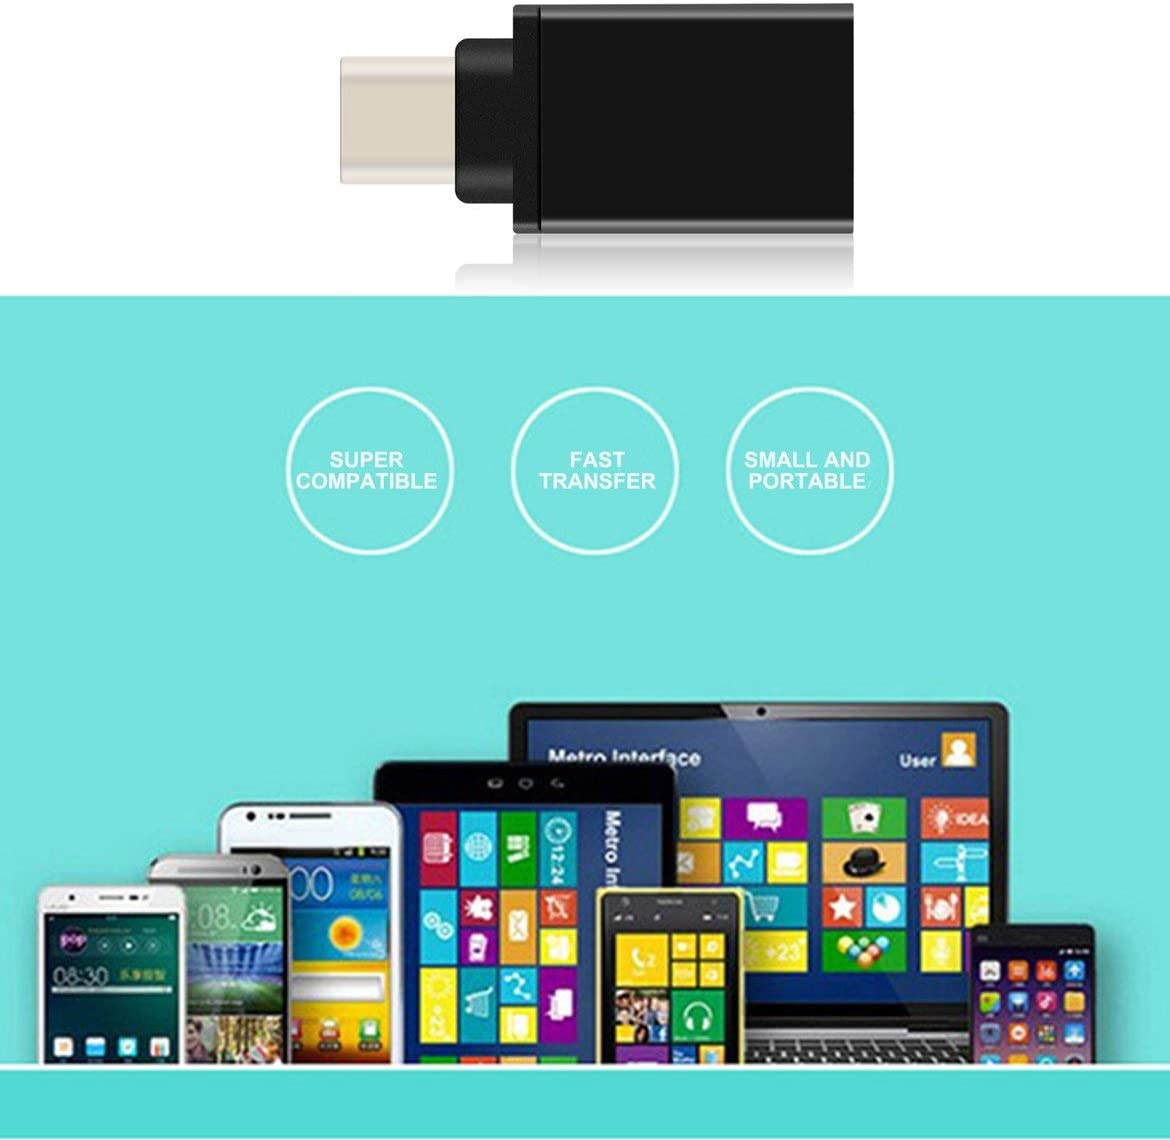 Portable USB 3.1 Type-C Male to USB 3.0 A Female Converter USB Cable Adapter Durable Aluminum Alloy Shell Ultra Light